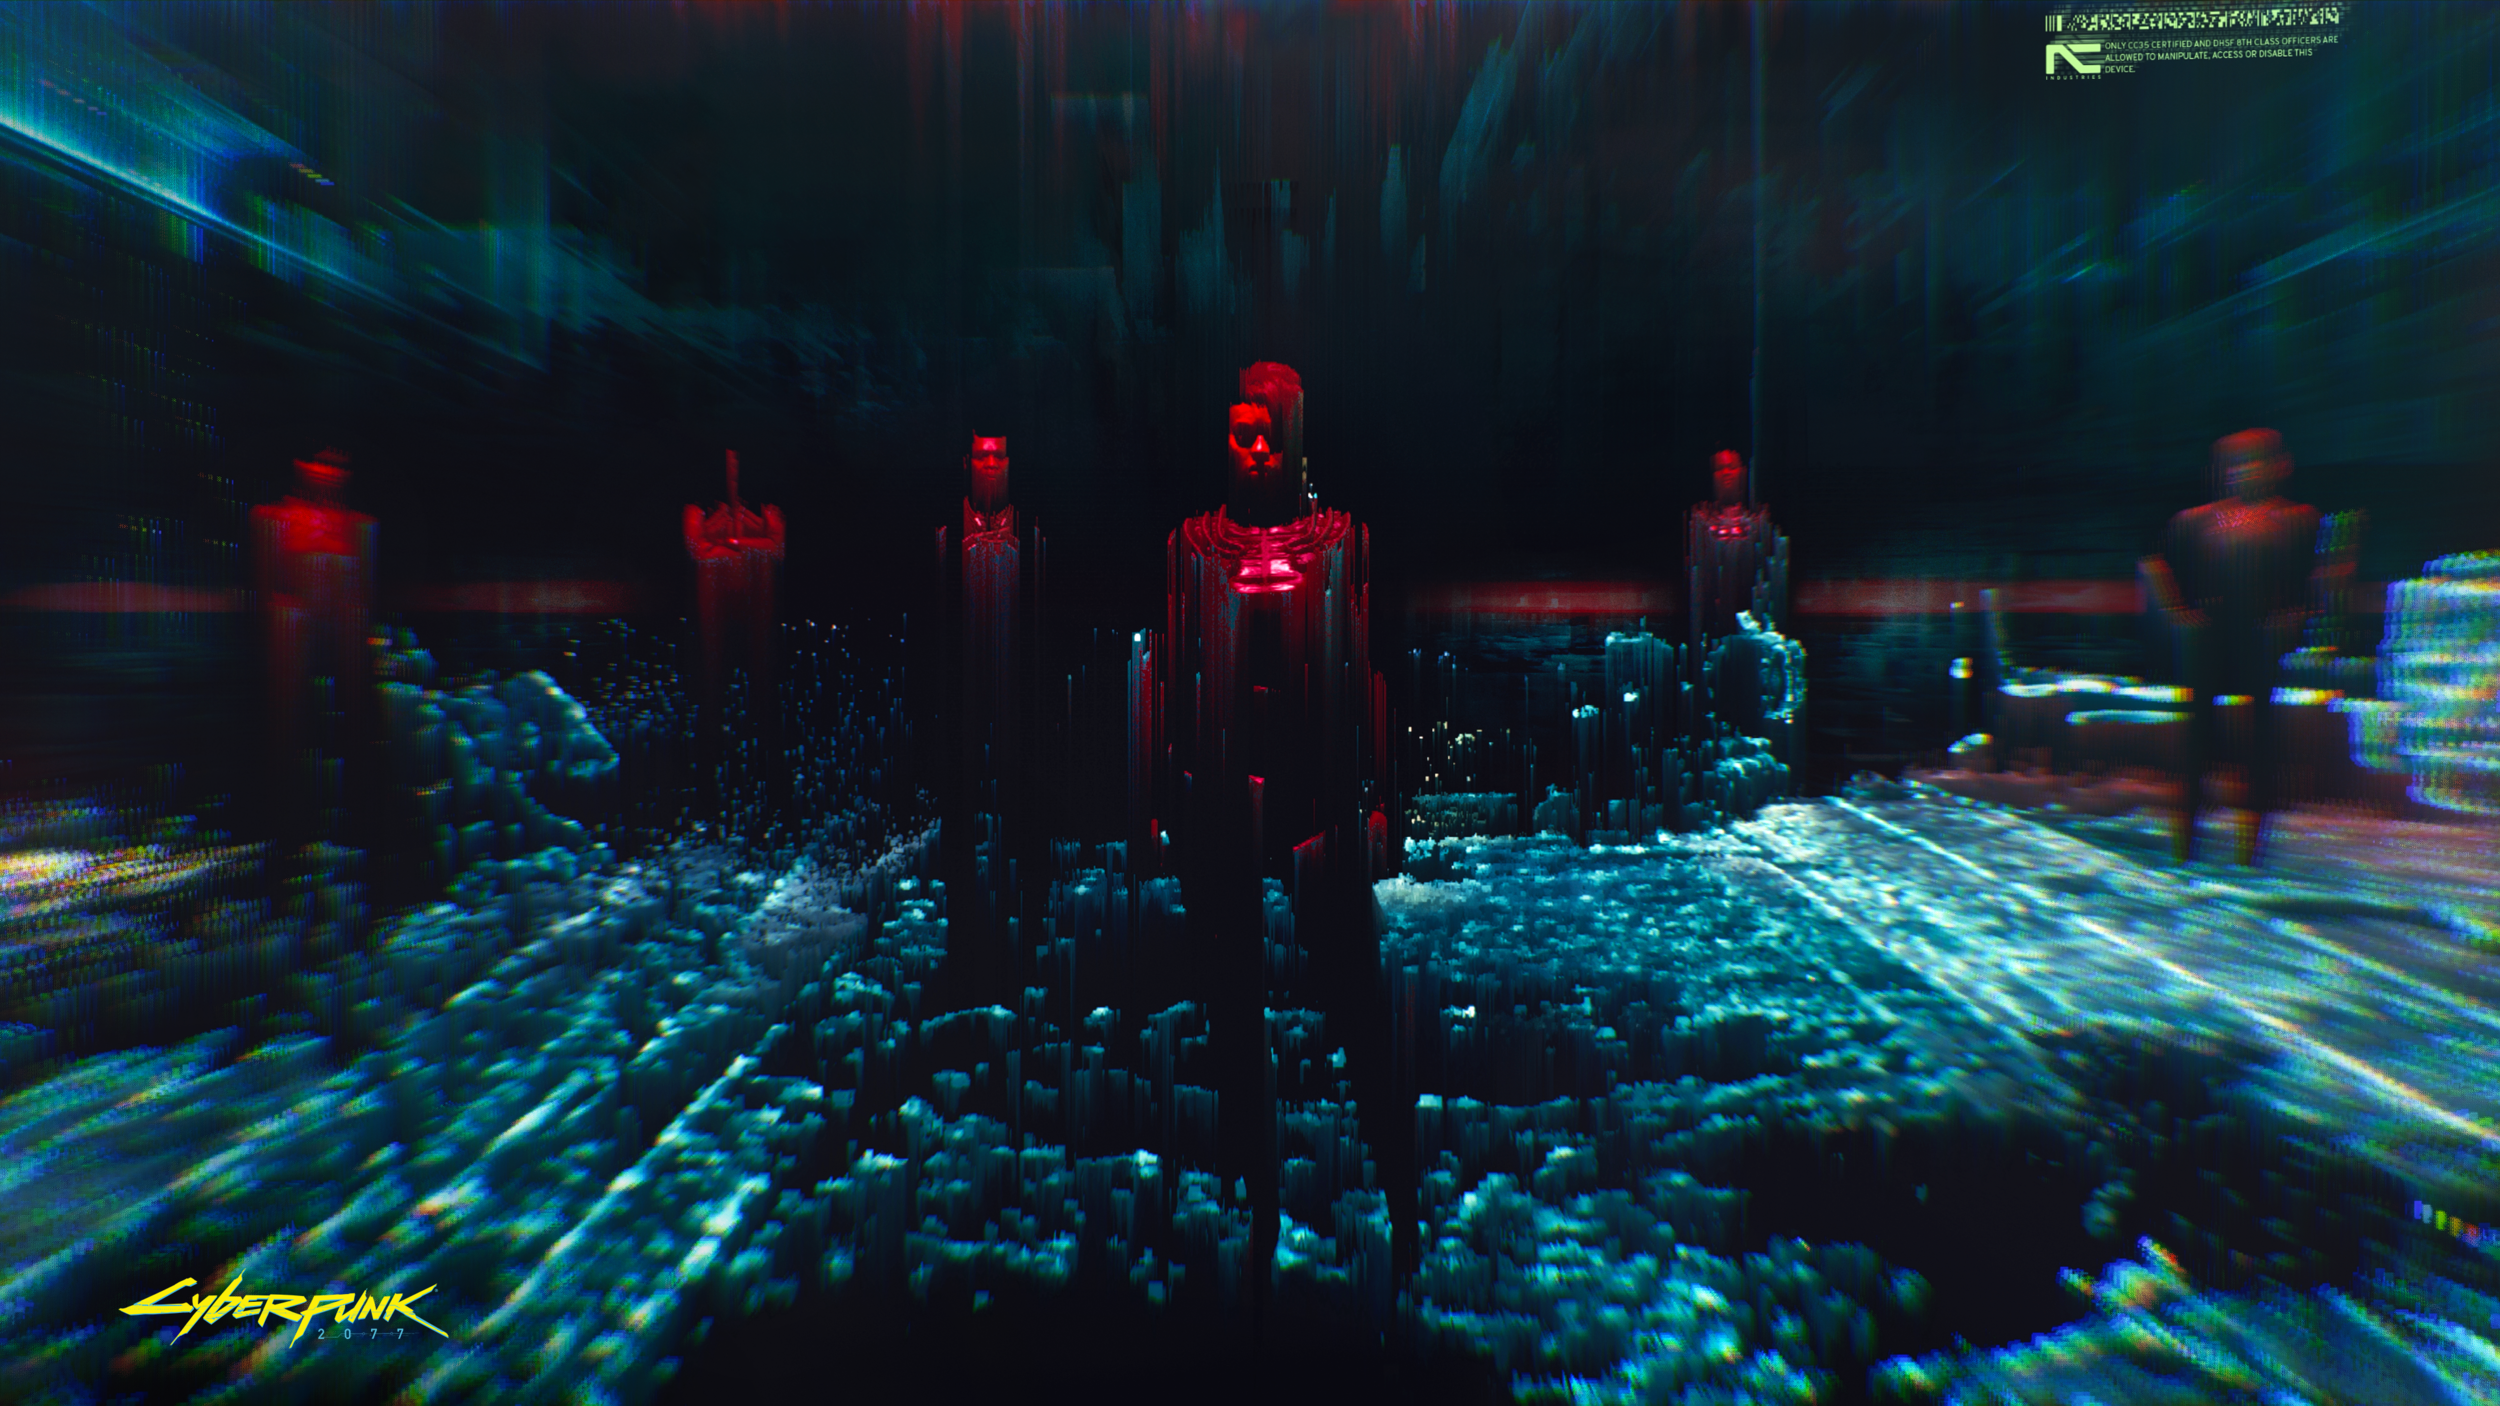 Cyberpunk2077-Really_love_what_you_did_with_the_place-RGB-EN.png